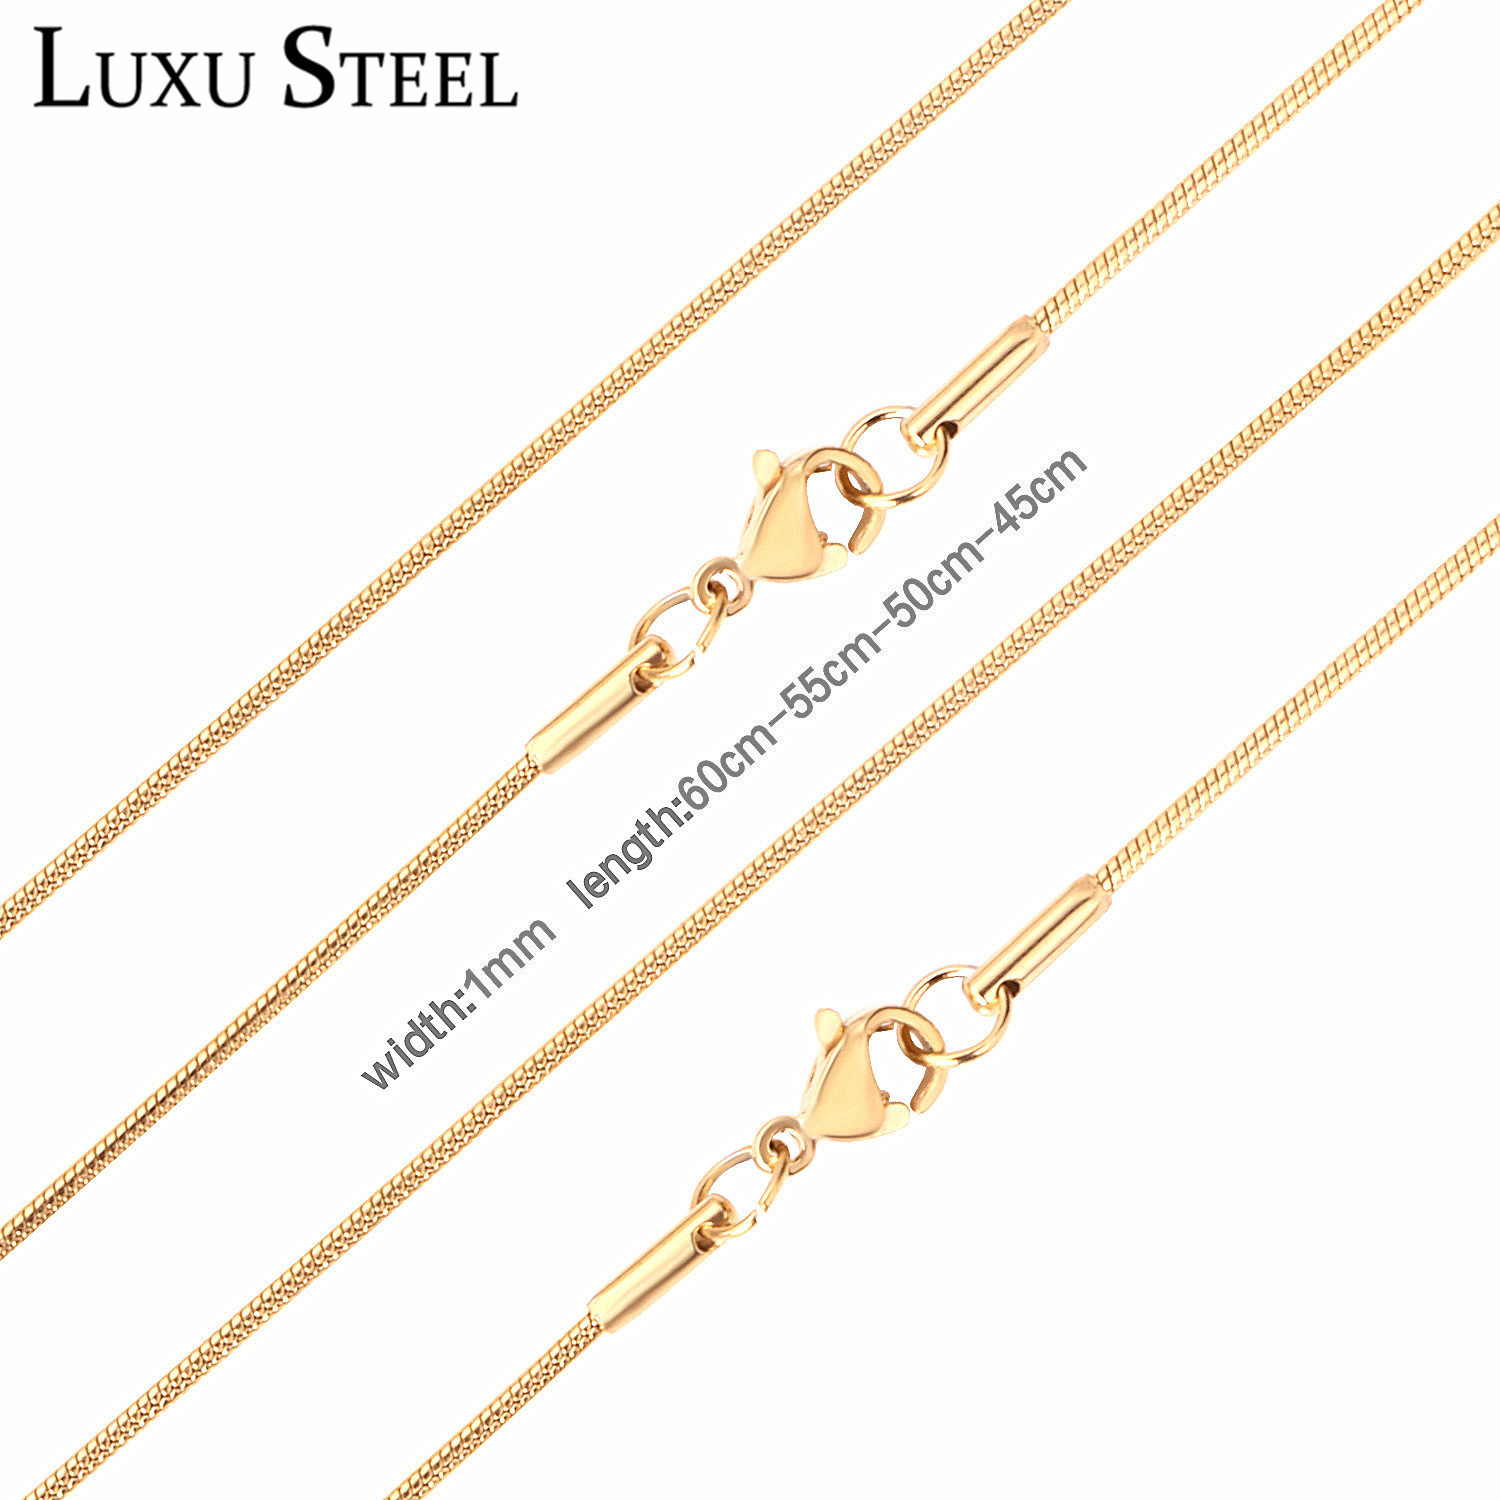 LUXUSTEEL Women Men Snake Chain Necklaces Stainless Steel Gold/Silver Filled Lobster Clasp Necklaces For Pendants Bijoux(China)